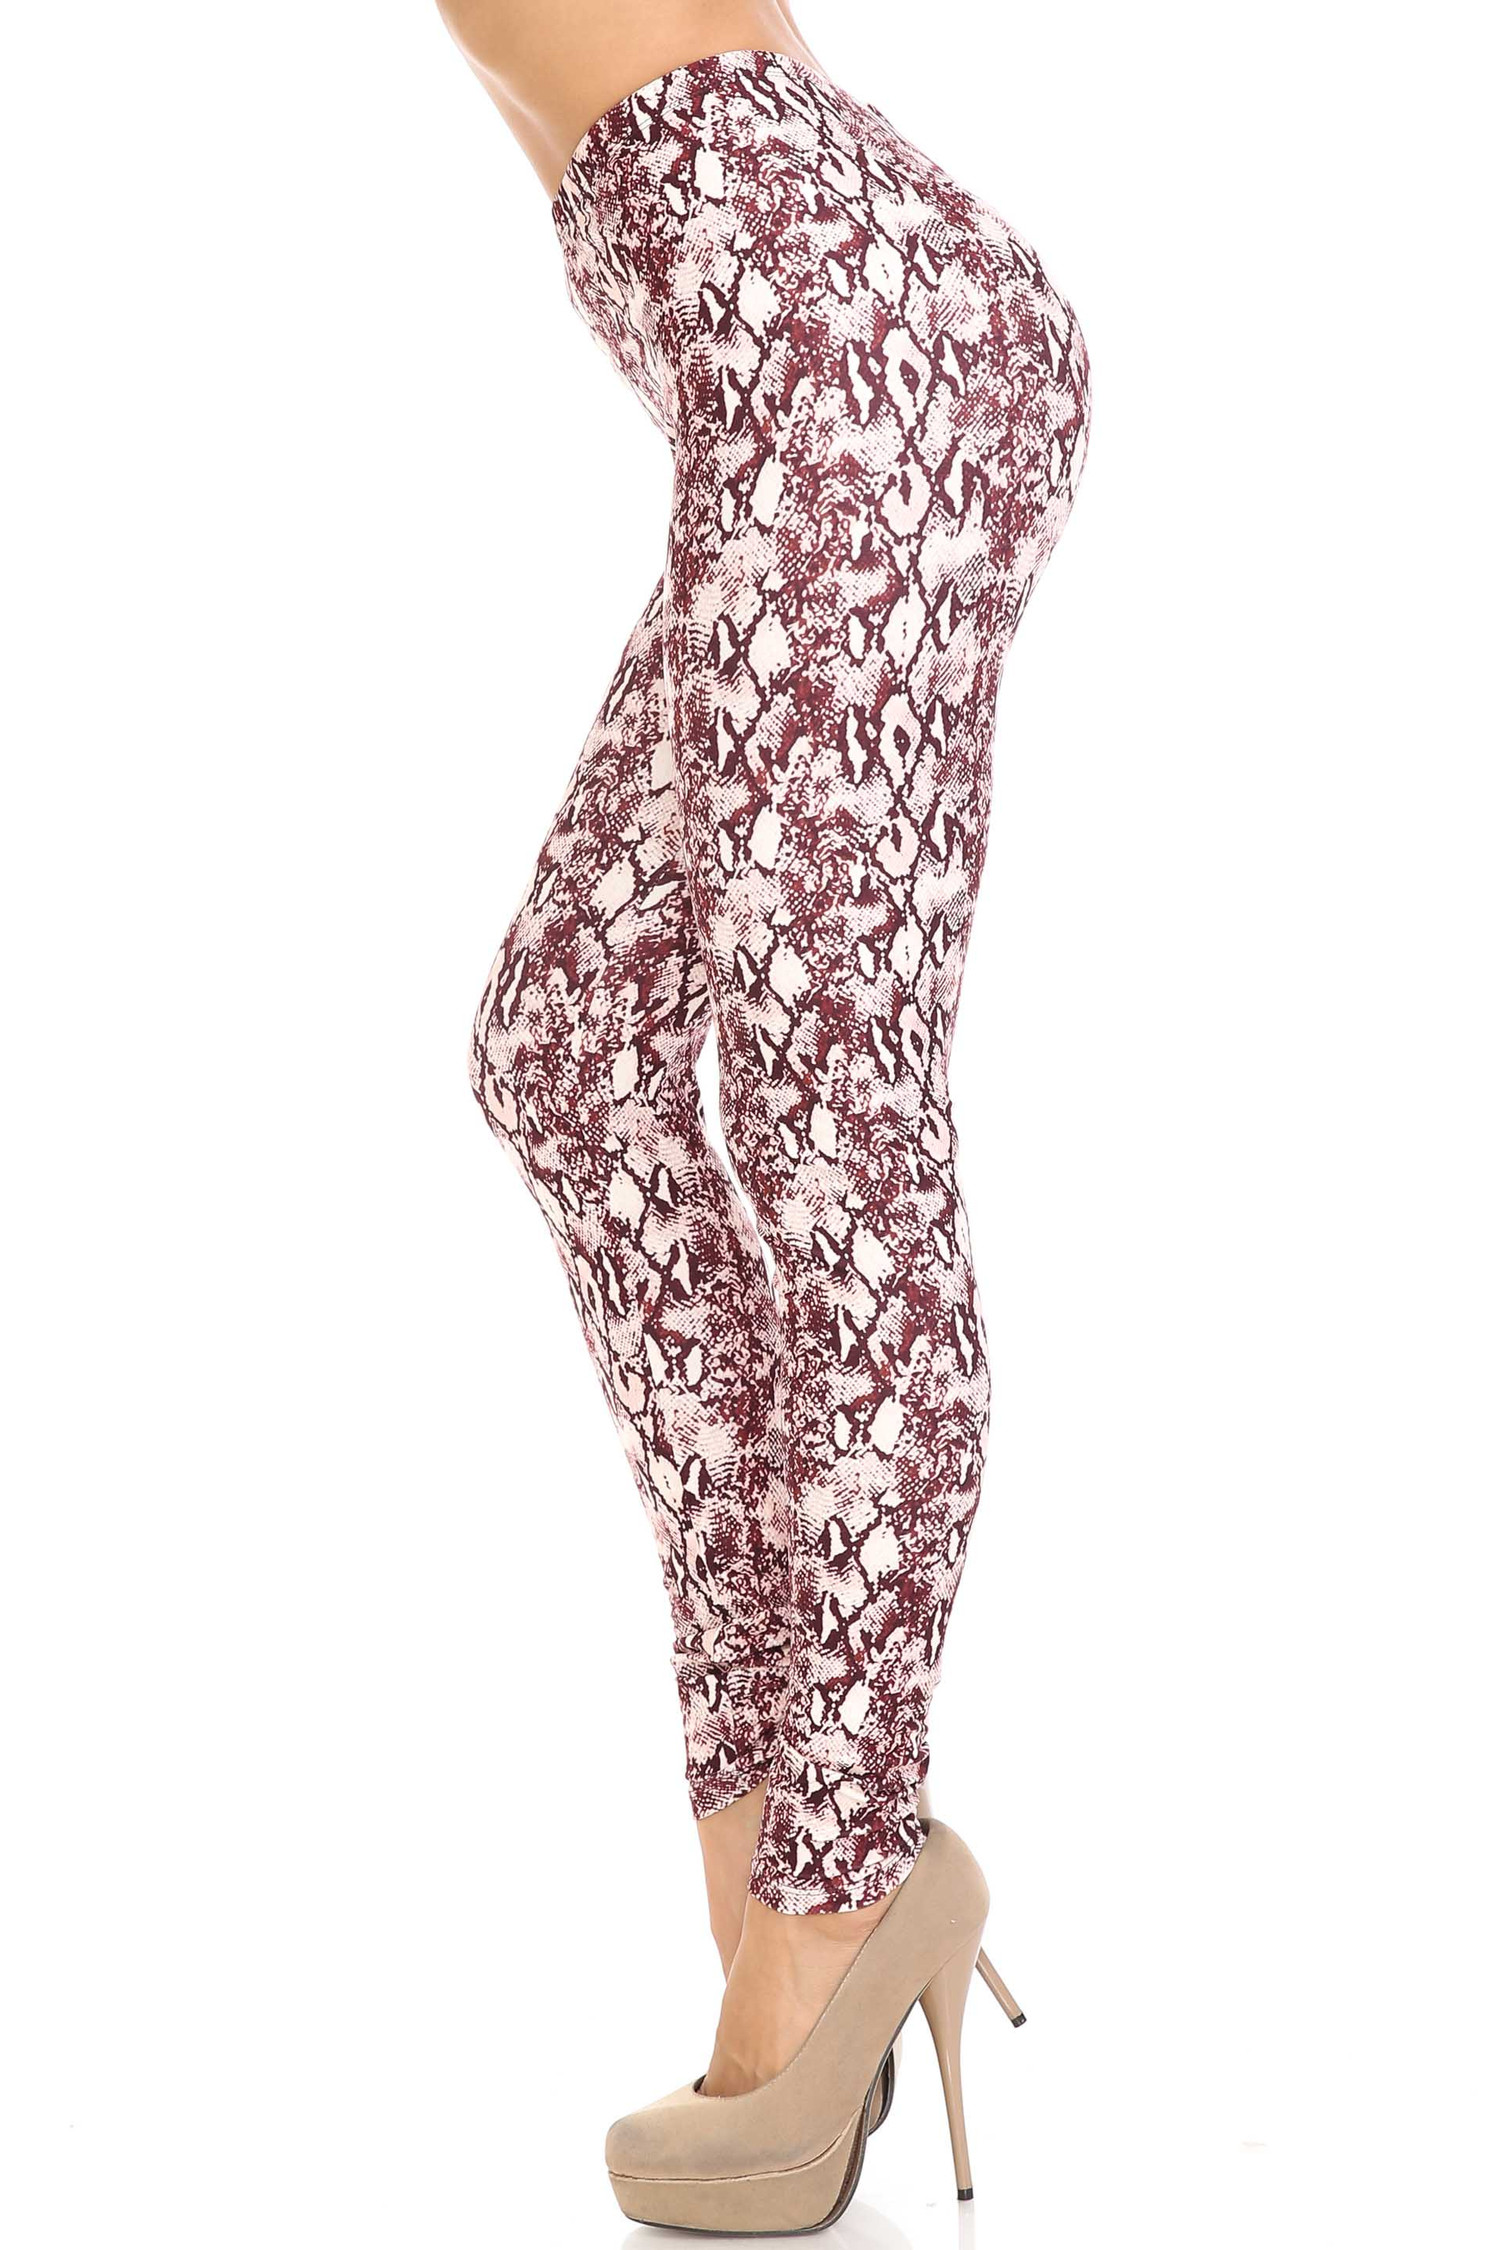 Creamy Soft Crimson Snakeskin Leggings - USA Fashion™